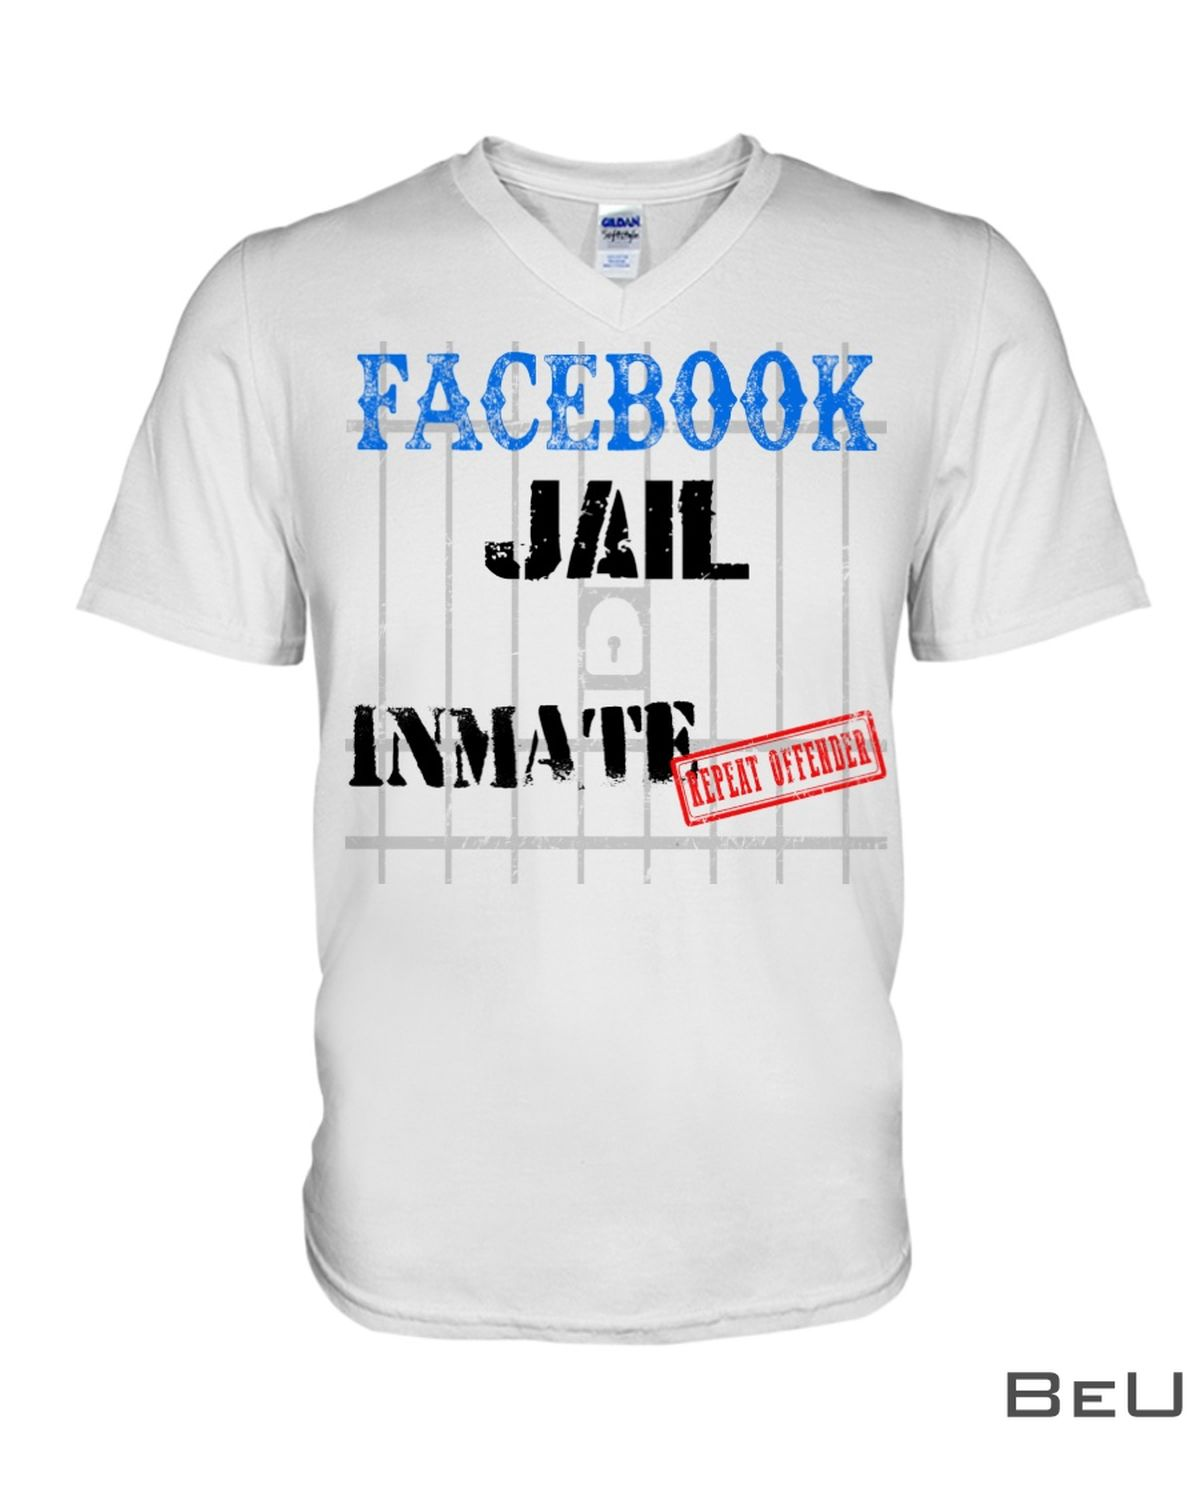 Facebook Jail Inmate Repeat Offender Shirtx